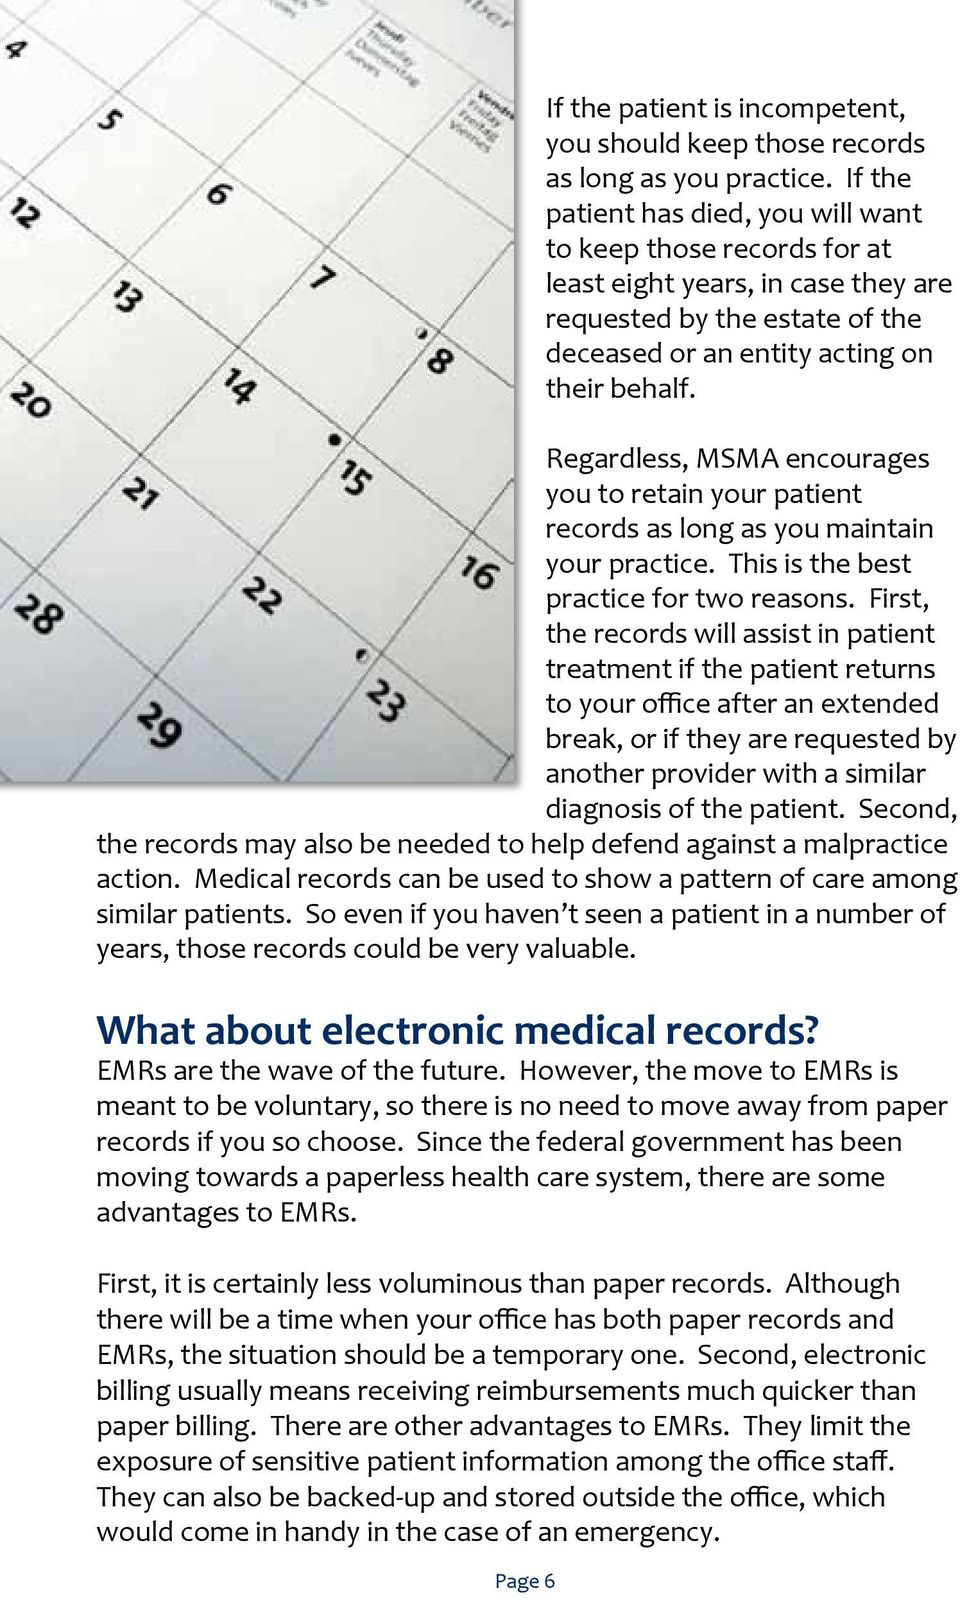 Regardless, MSMA encourages you to retain your patient records as long as you maintain your practice. This is the best practice for two reasons.